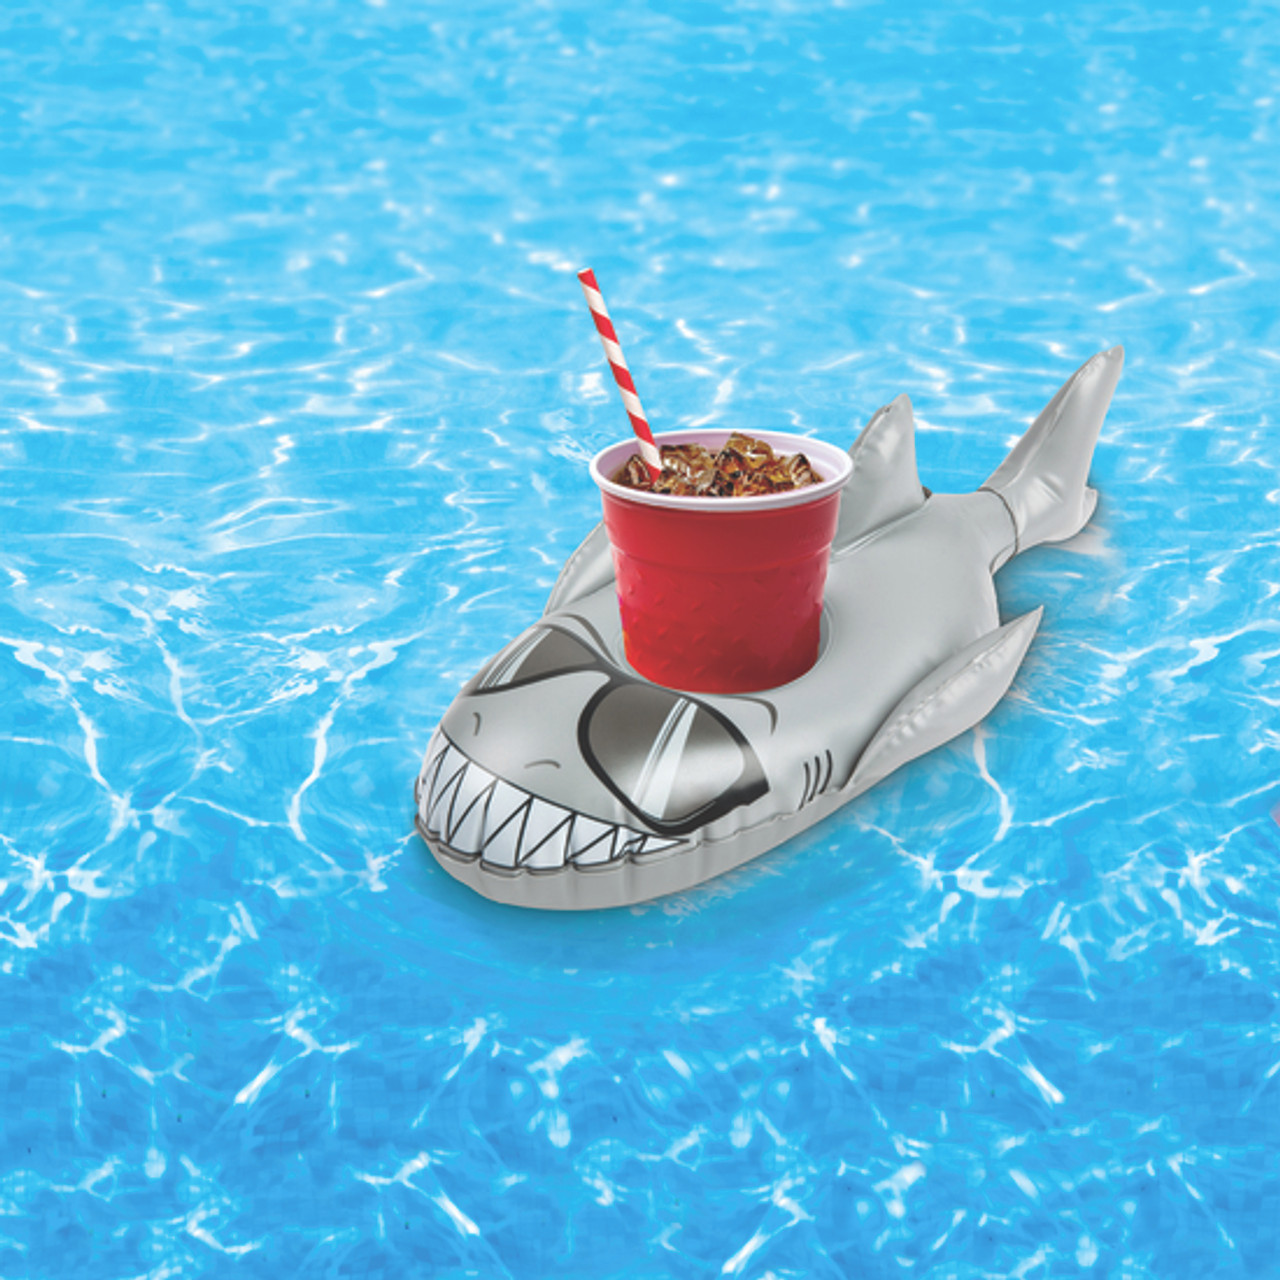 shark-beverage-boat-pool-party-supplies-nightclub-shop-outdoors-2